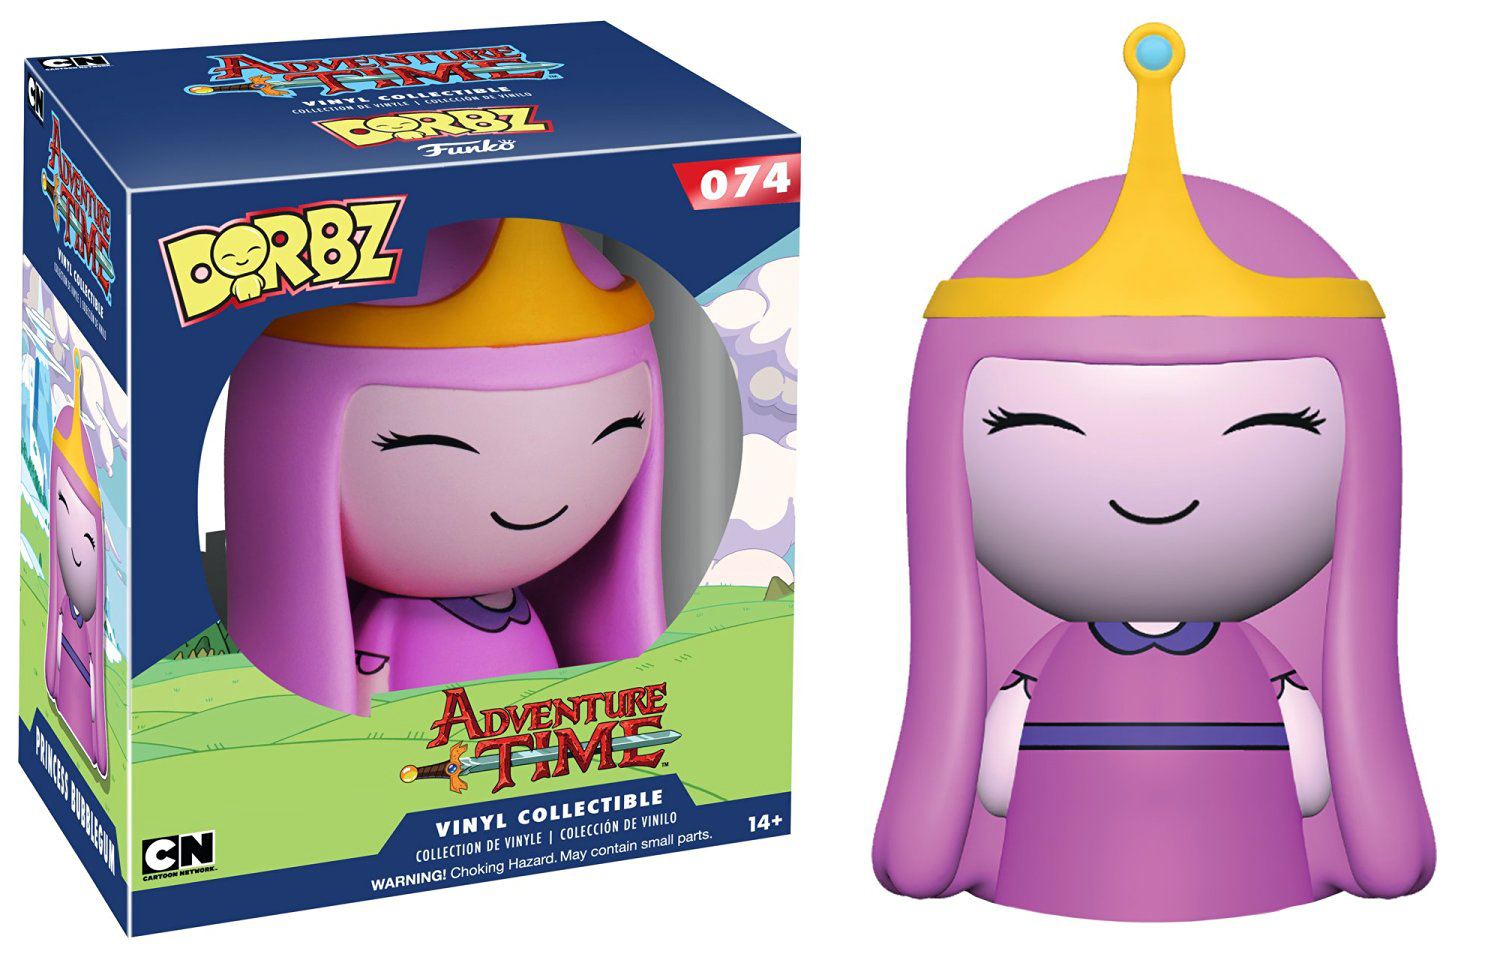 Dorbz Adventure Time Princess Bubblegum Vinyl Figure